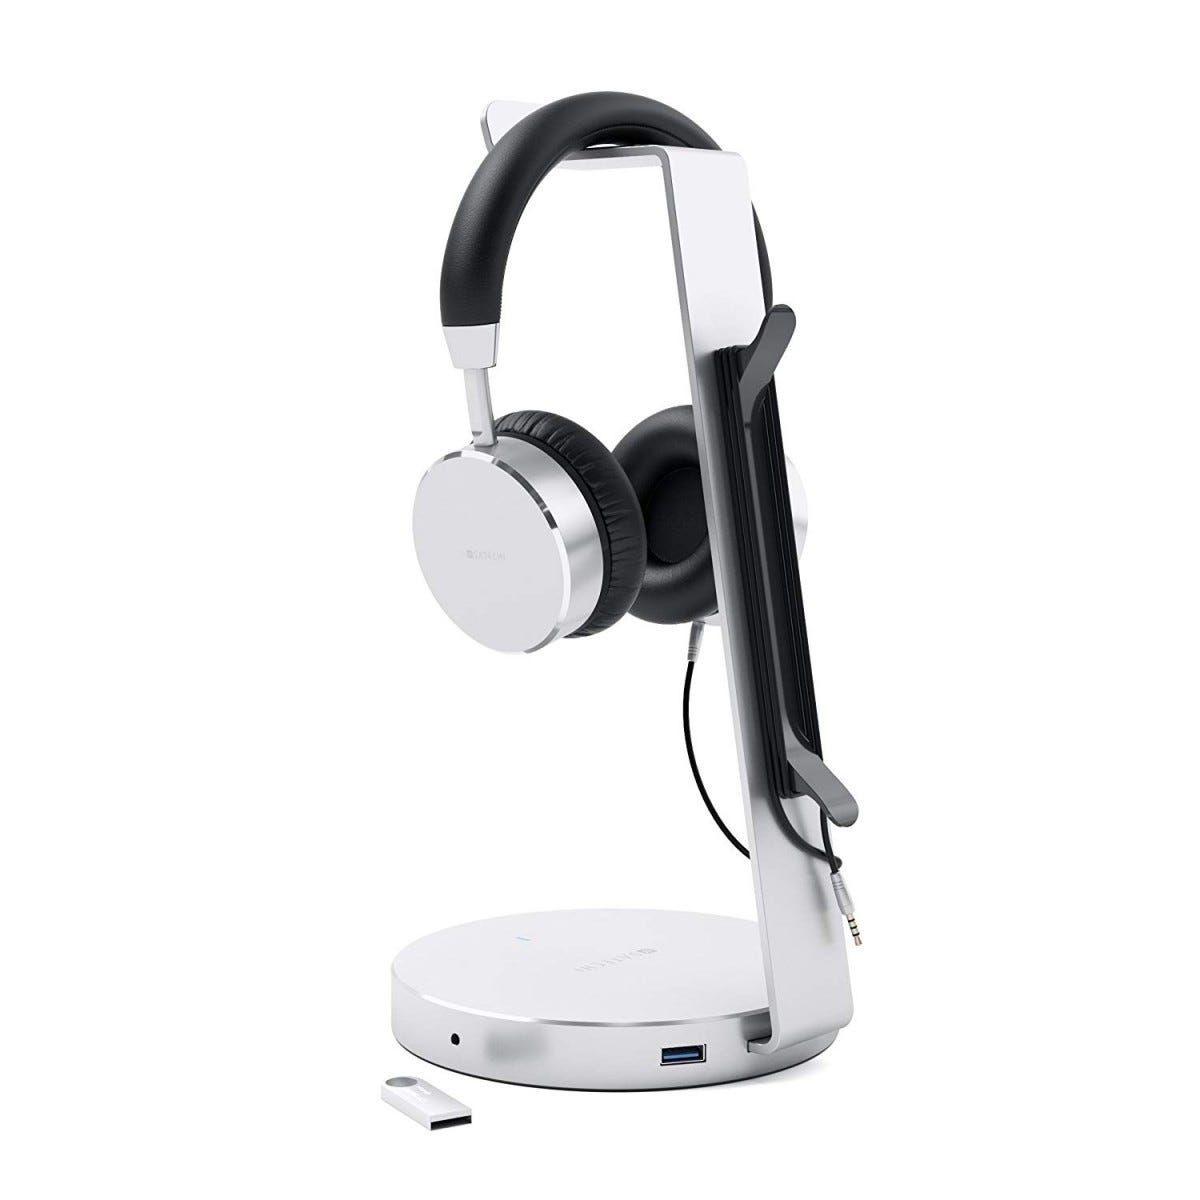 Satechi aluminum headphone stand with integrated USB ports, audio ports, and cable management